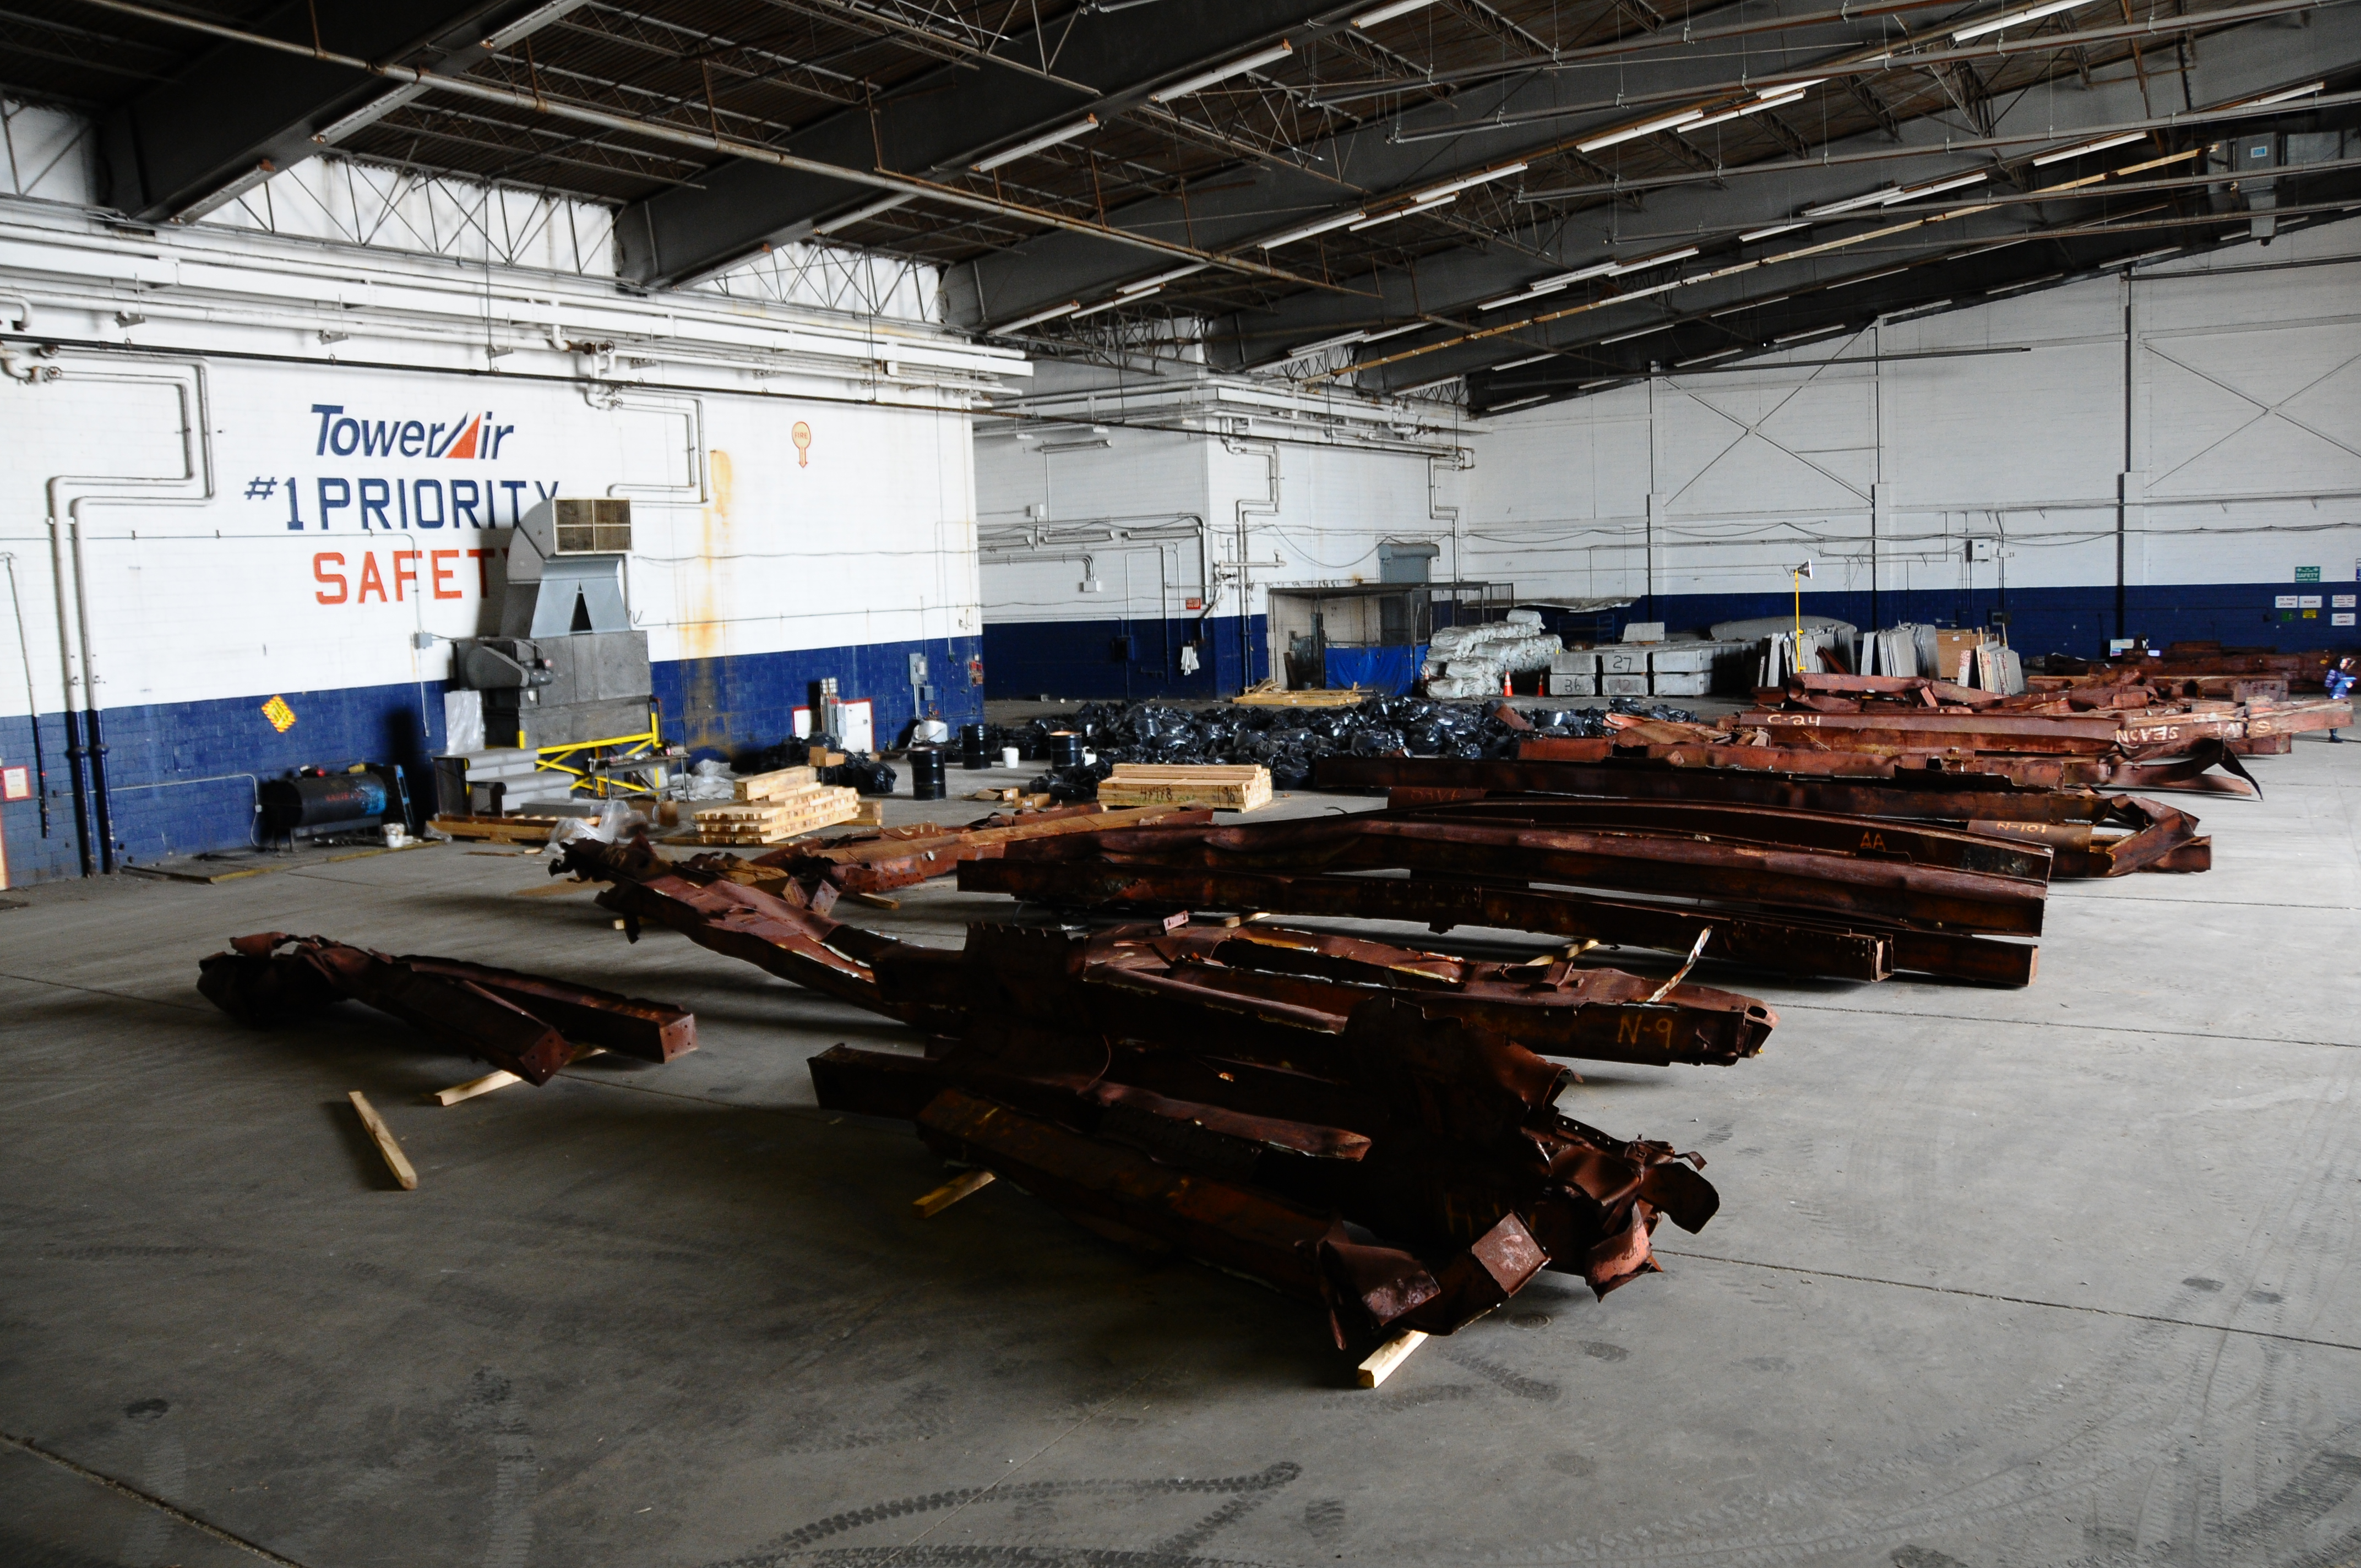 Steel beams analyzed by the National Institute of Standards and Technology rest inside a hangar once occupied by TKTK at JFK airport in New York.